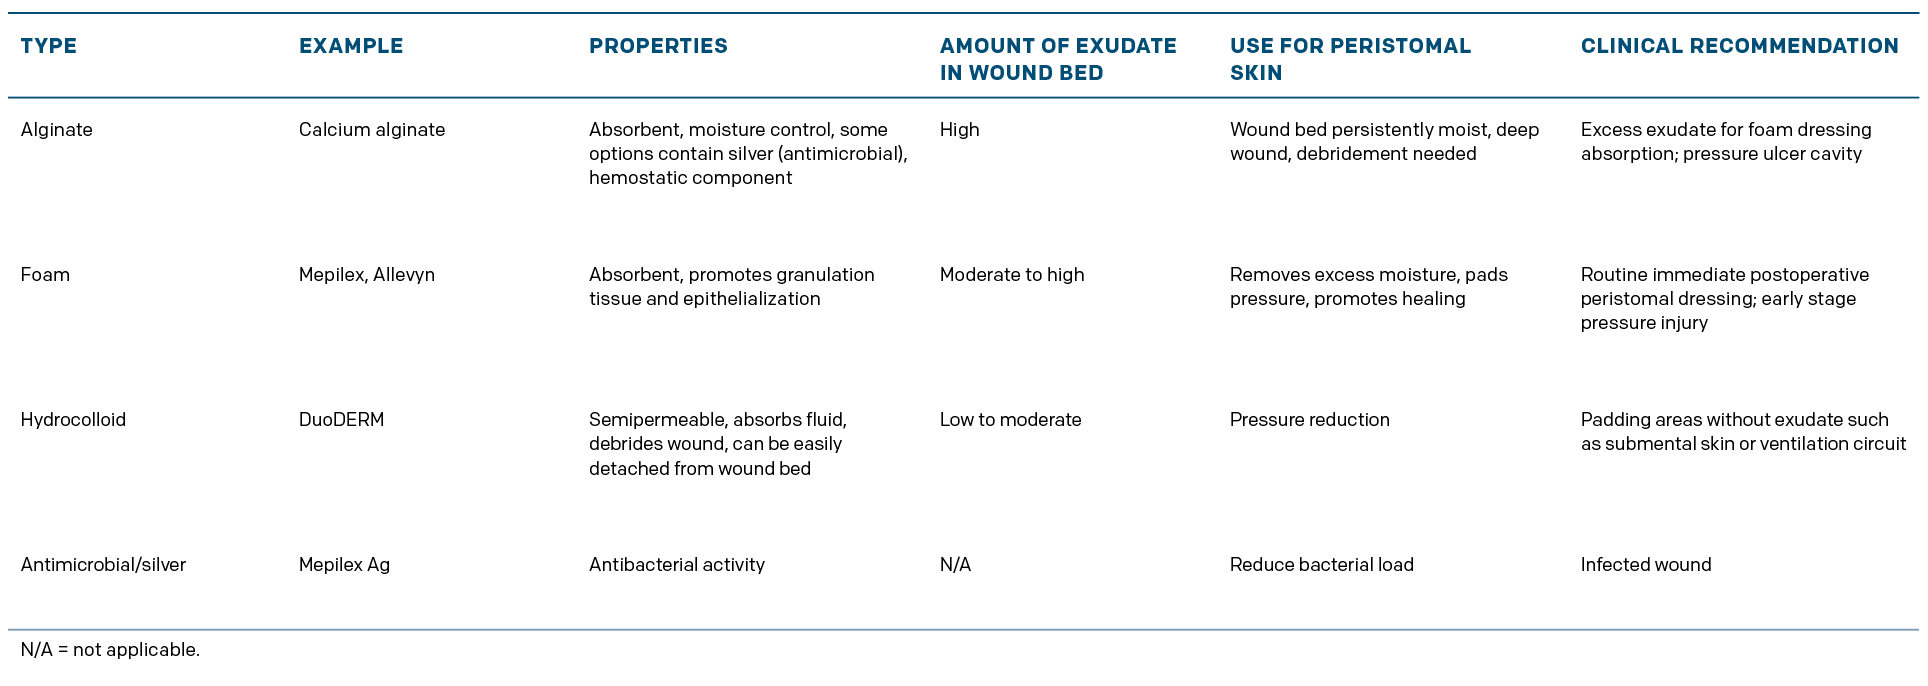 Table 1: Common Types of Wound Dressing Materials